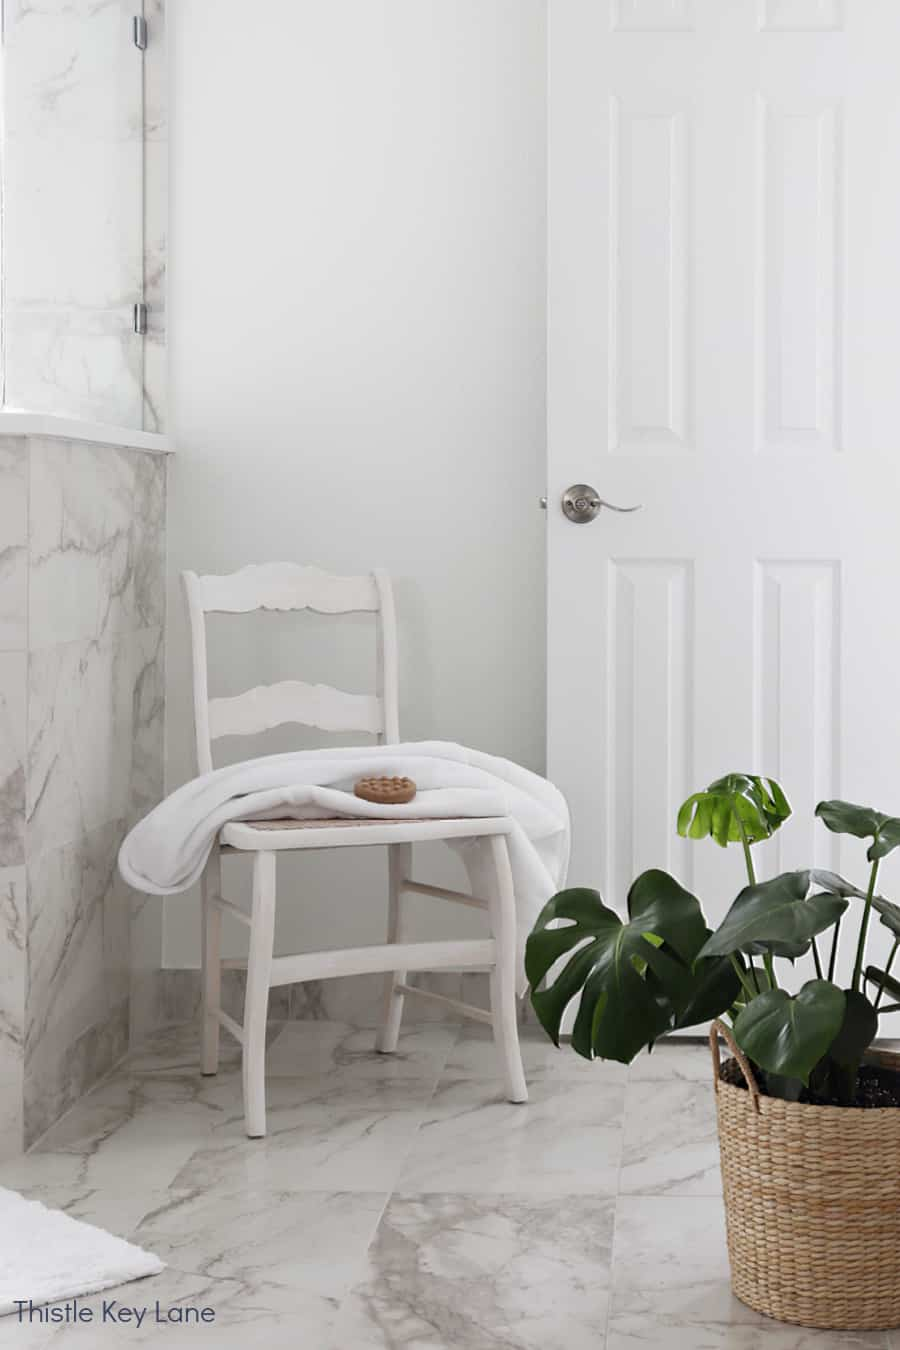 Vintage cane chair and monstera plant. White And Gray Bathroom Makeover.